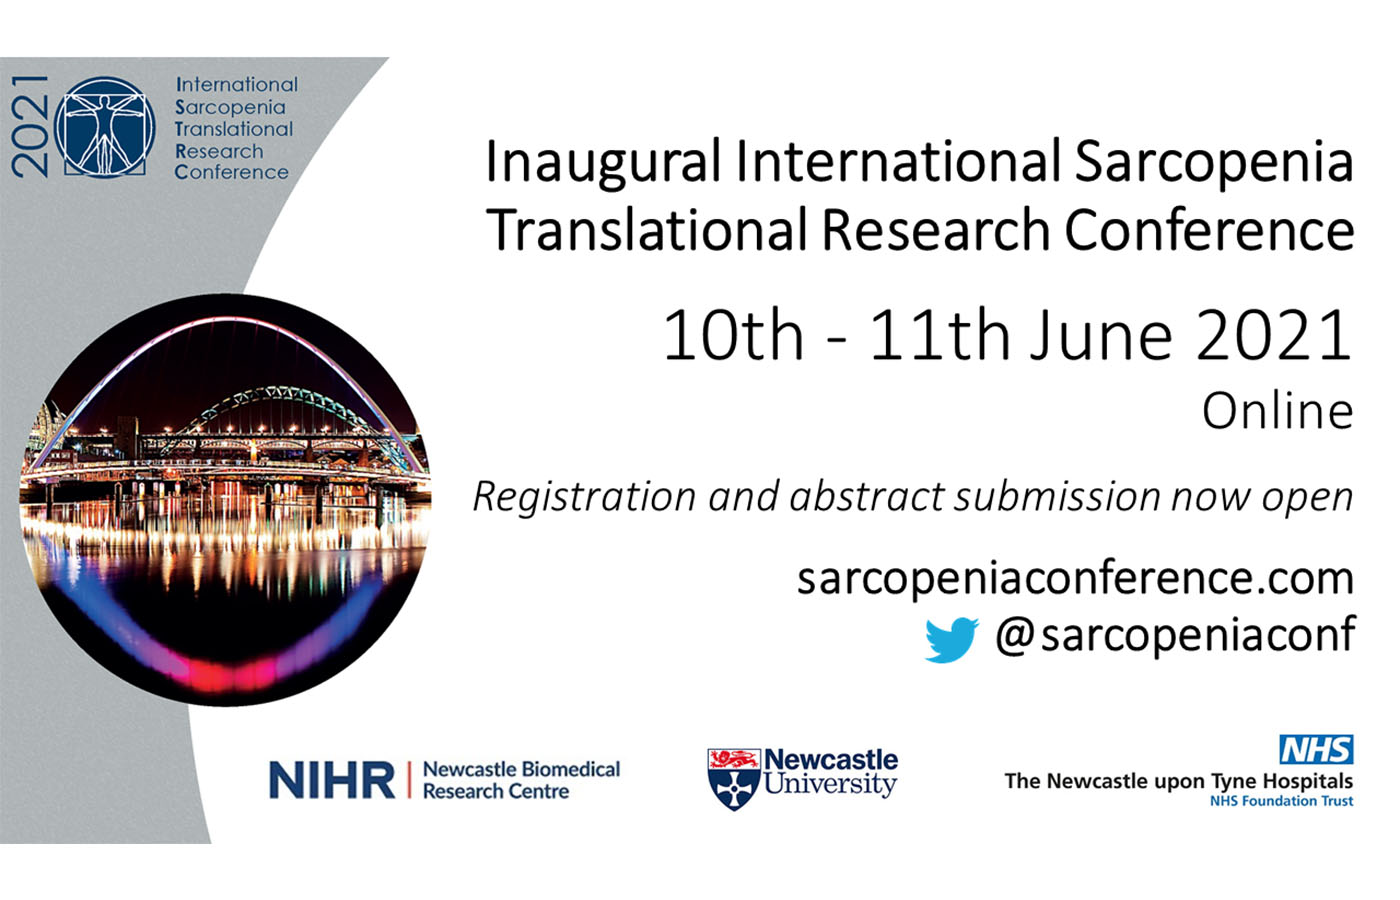 International Sarcopenia conference poster